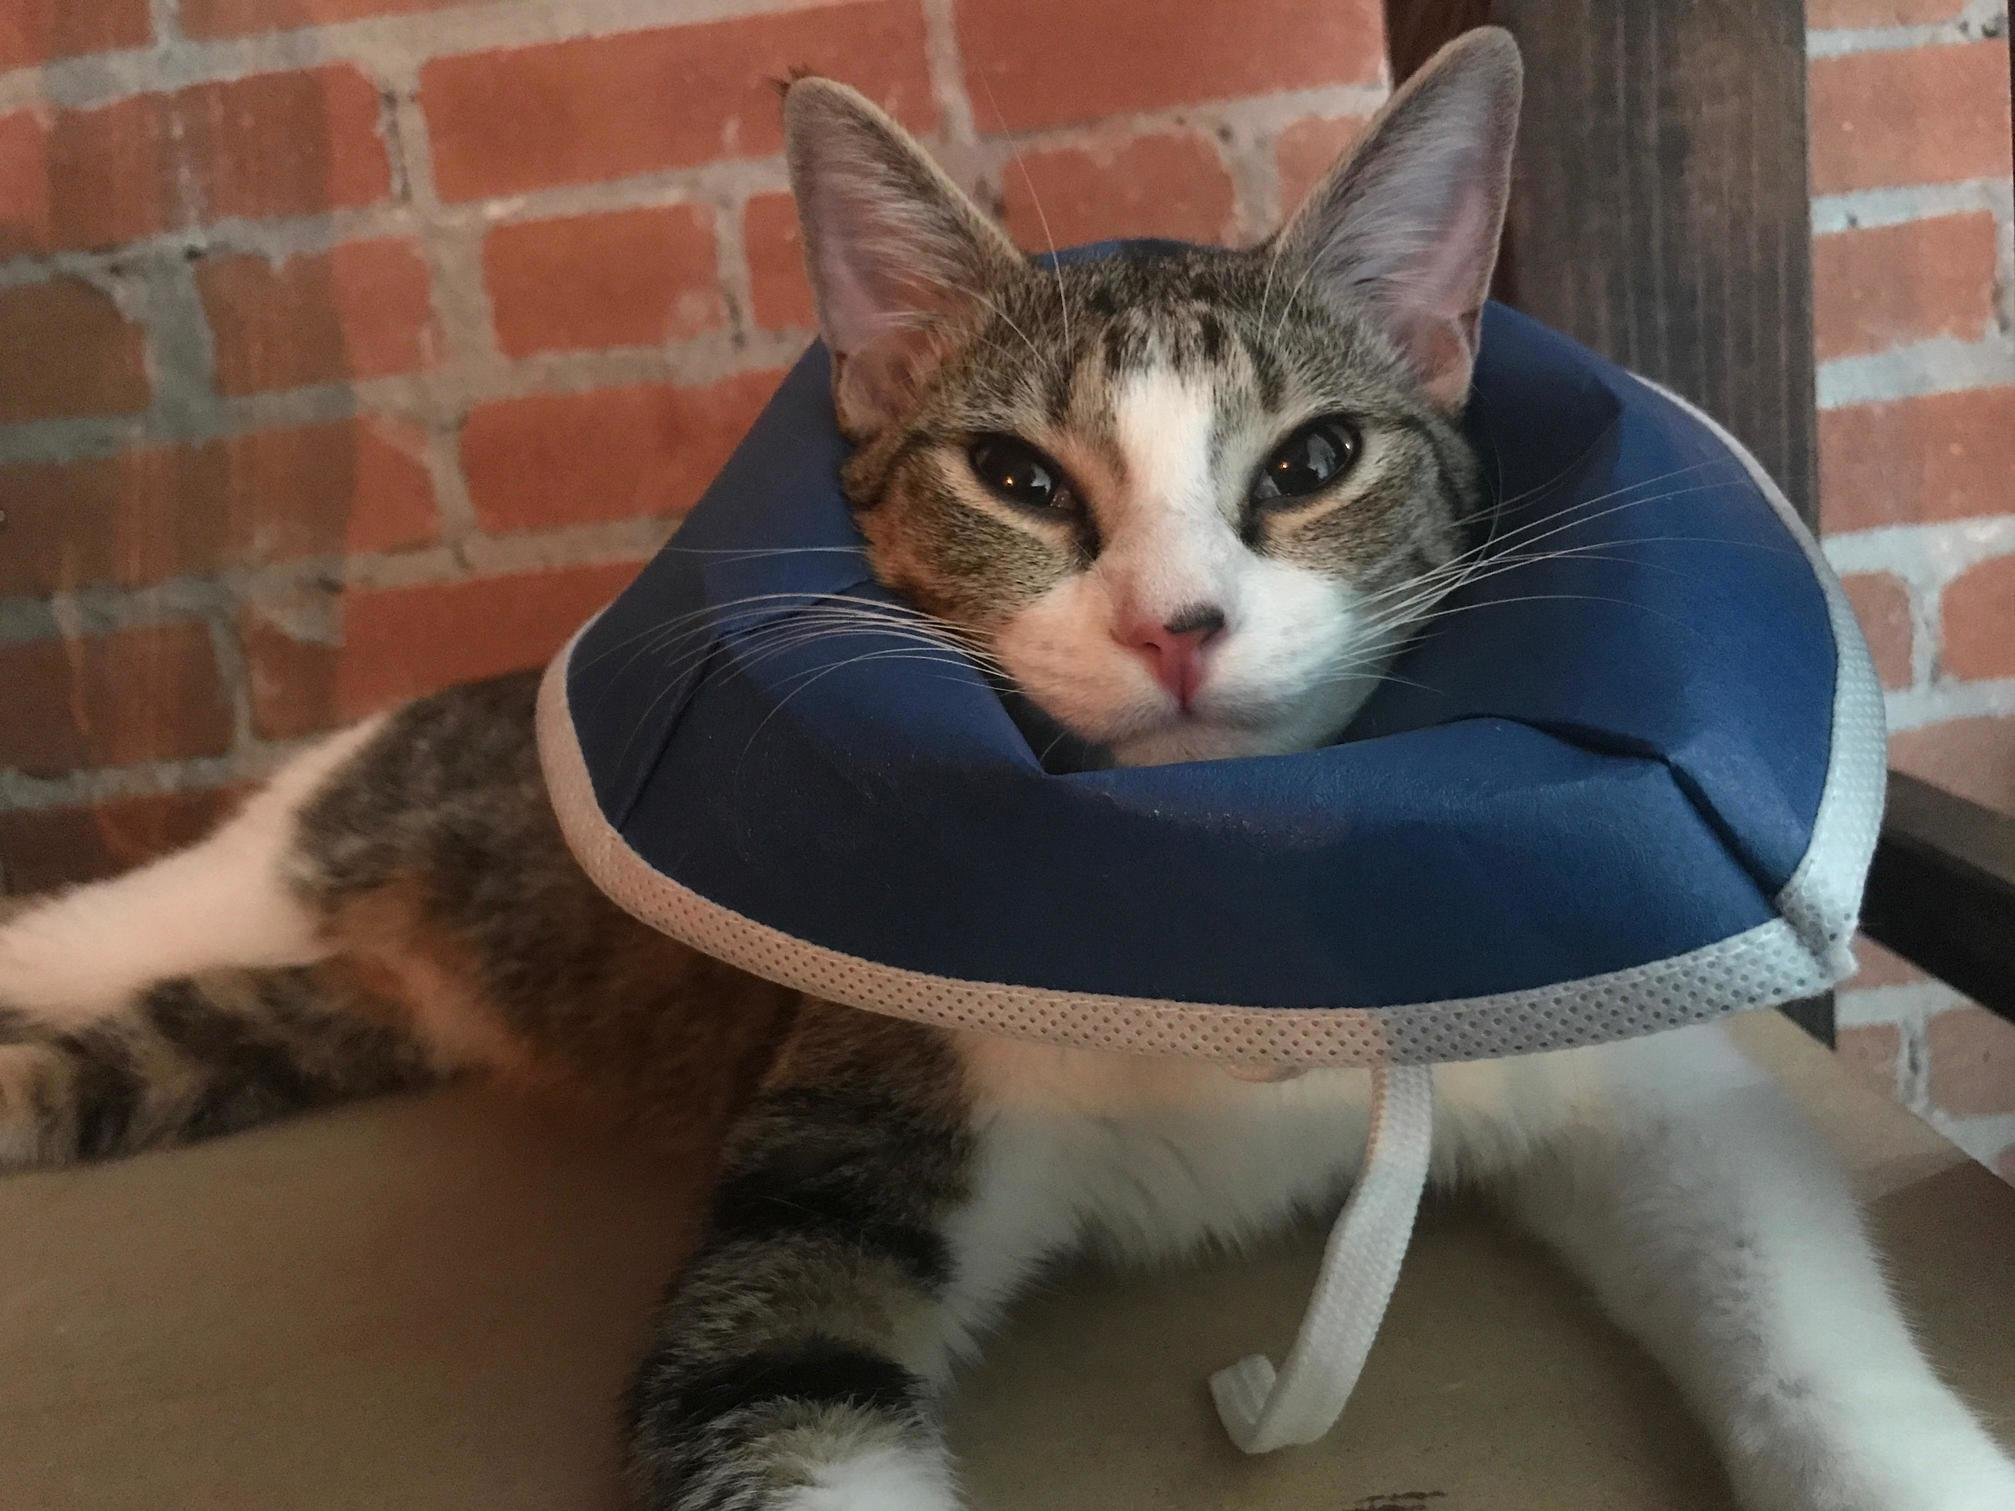 The vet calls it my party hat but i dont see any party around here….